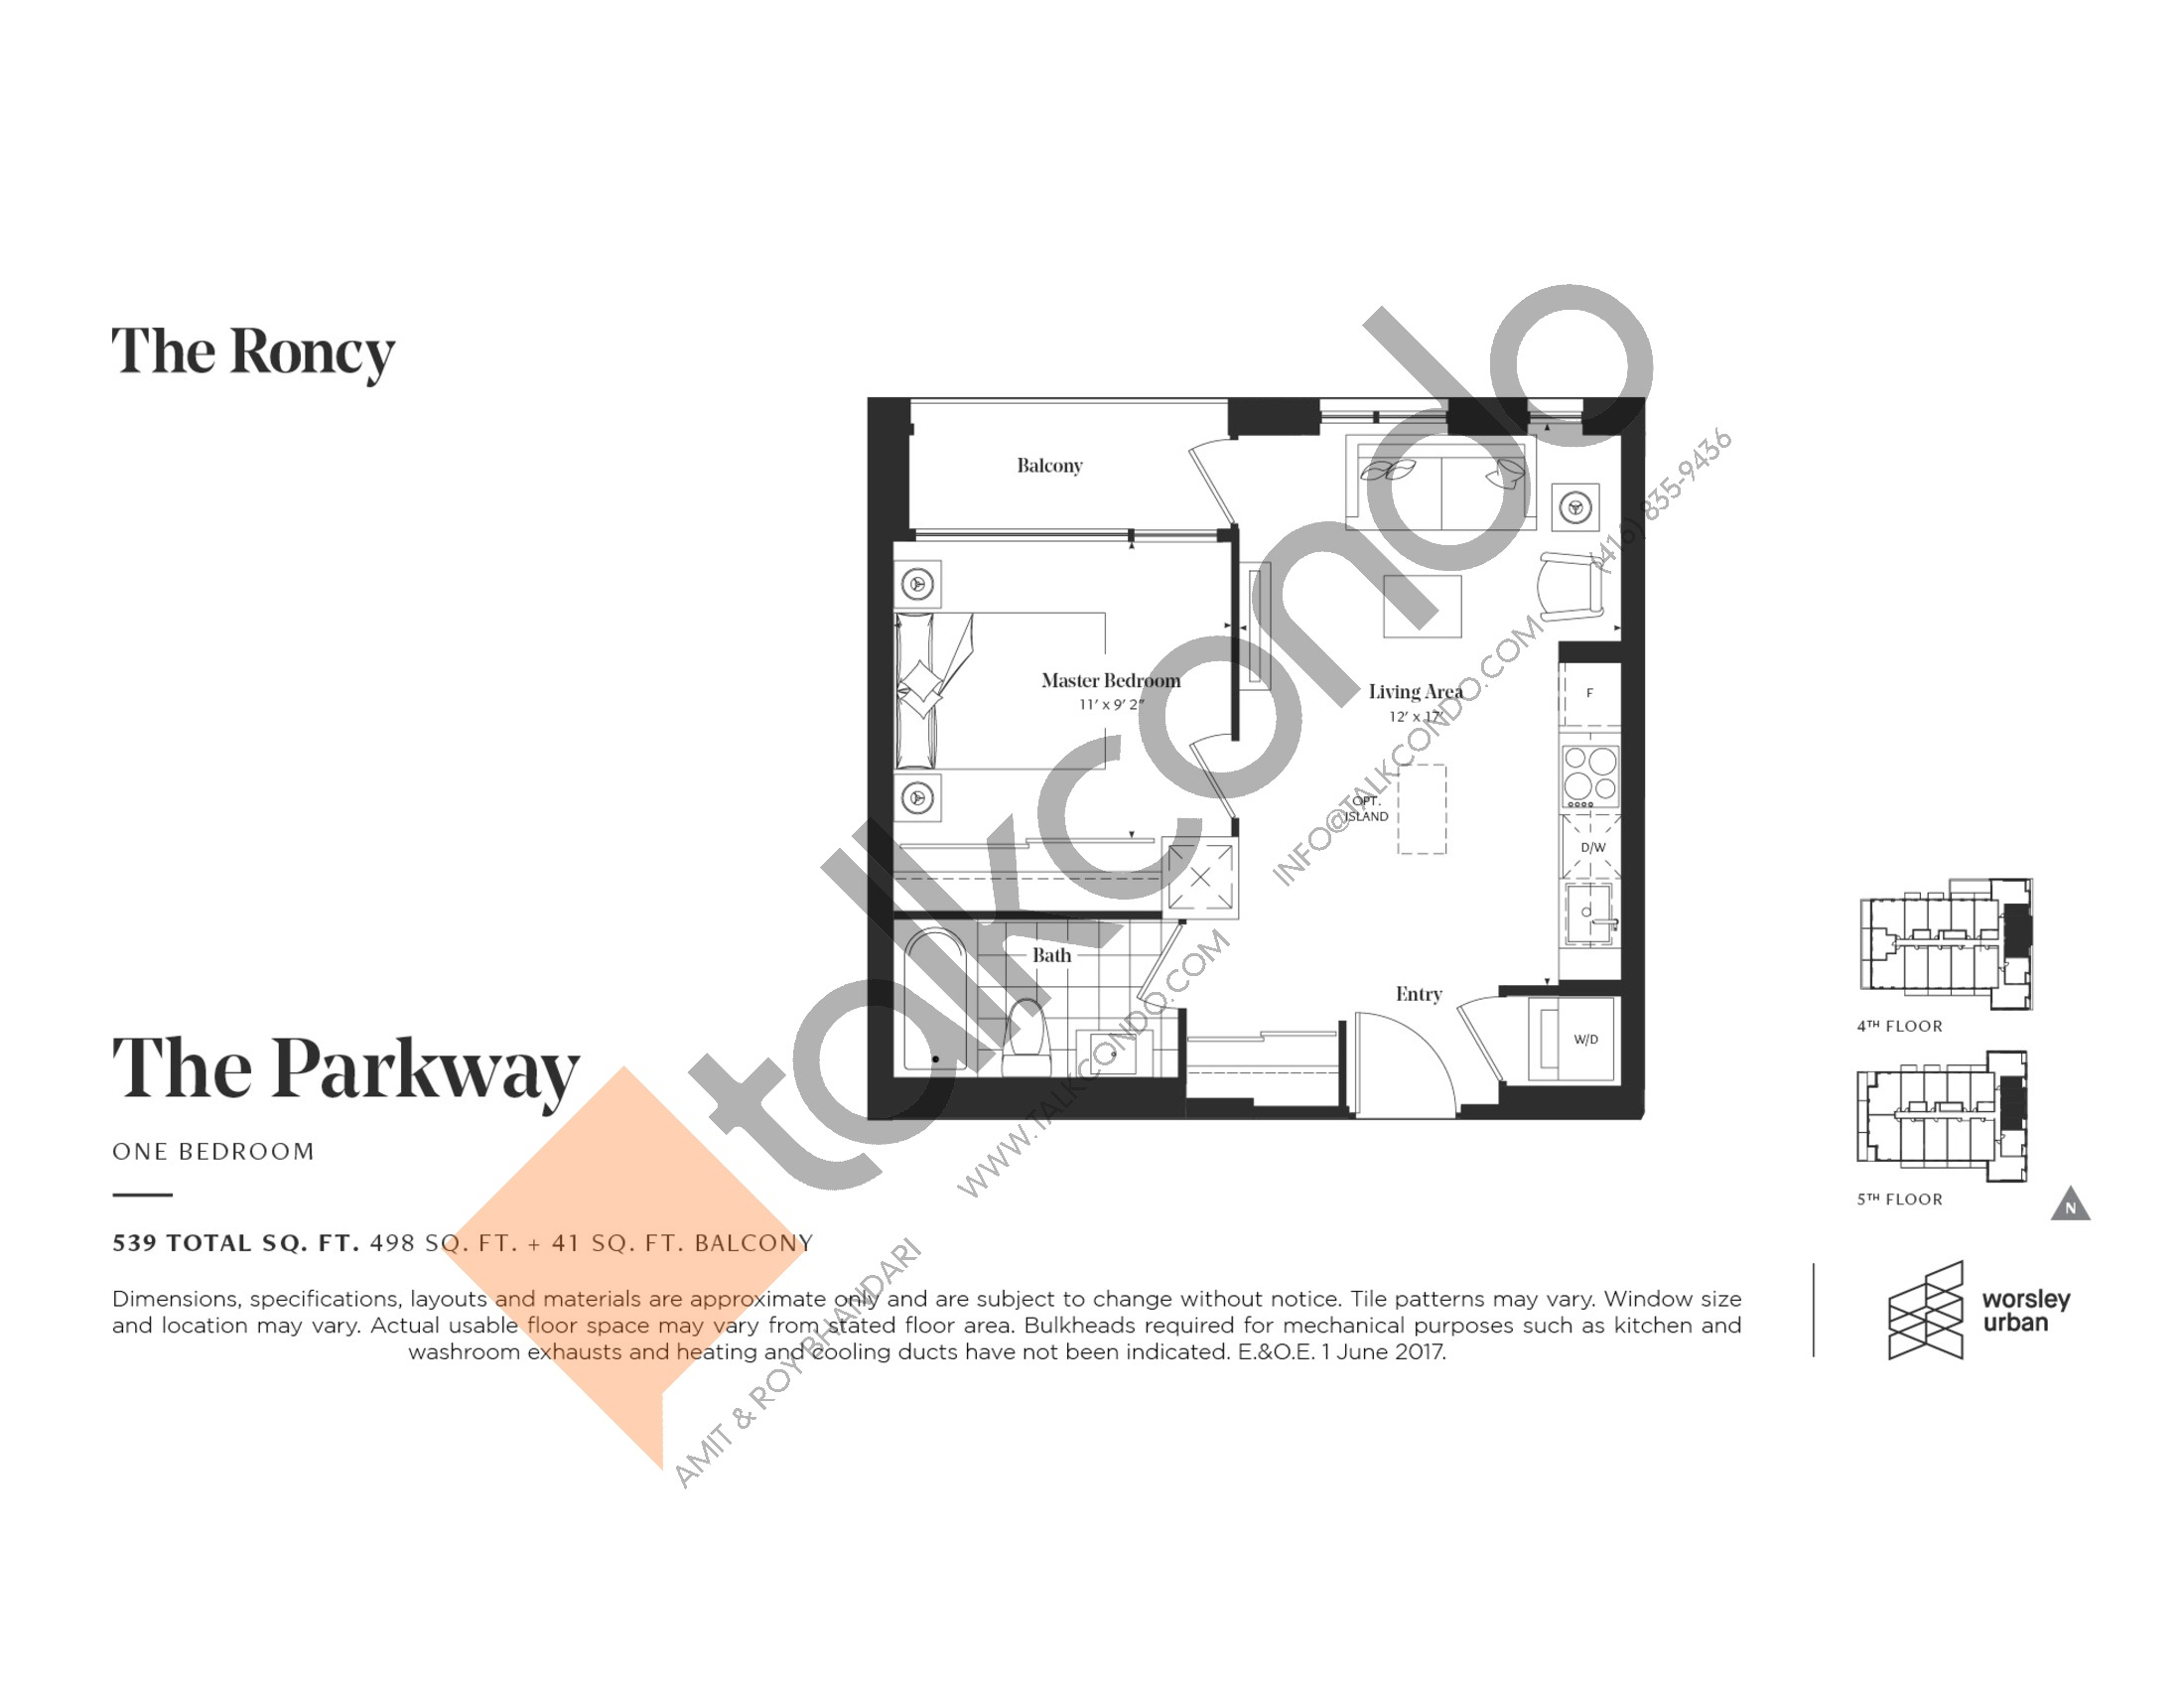 The Parkway Floor Plan at The Roncy Condos - 498 sq.ft